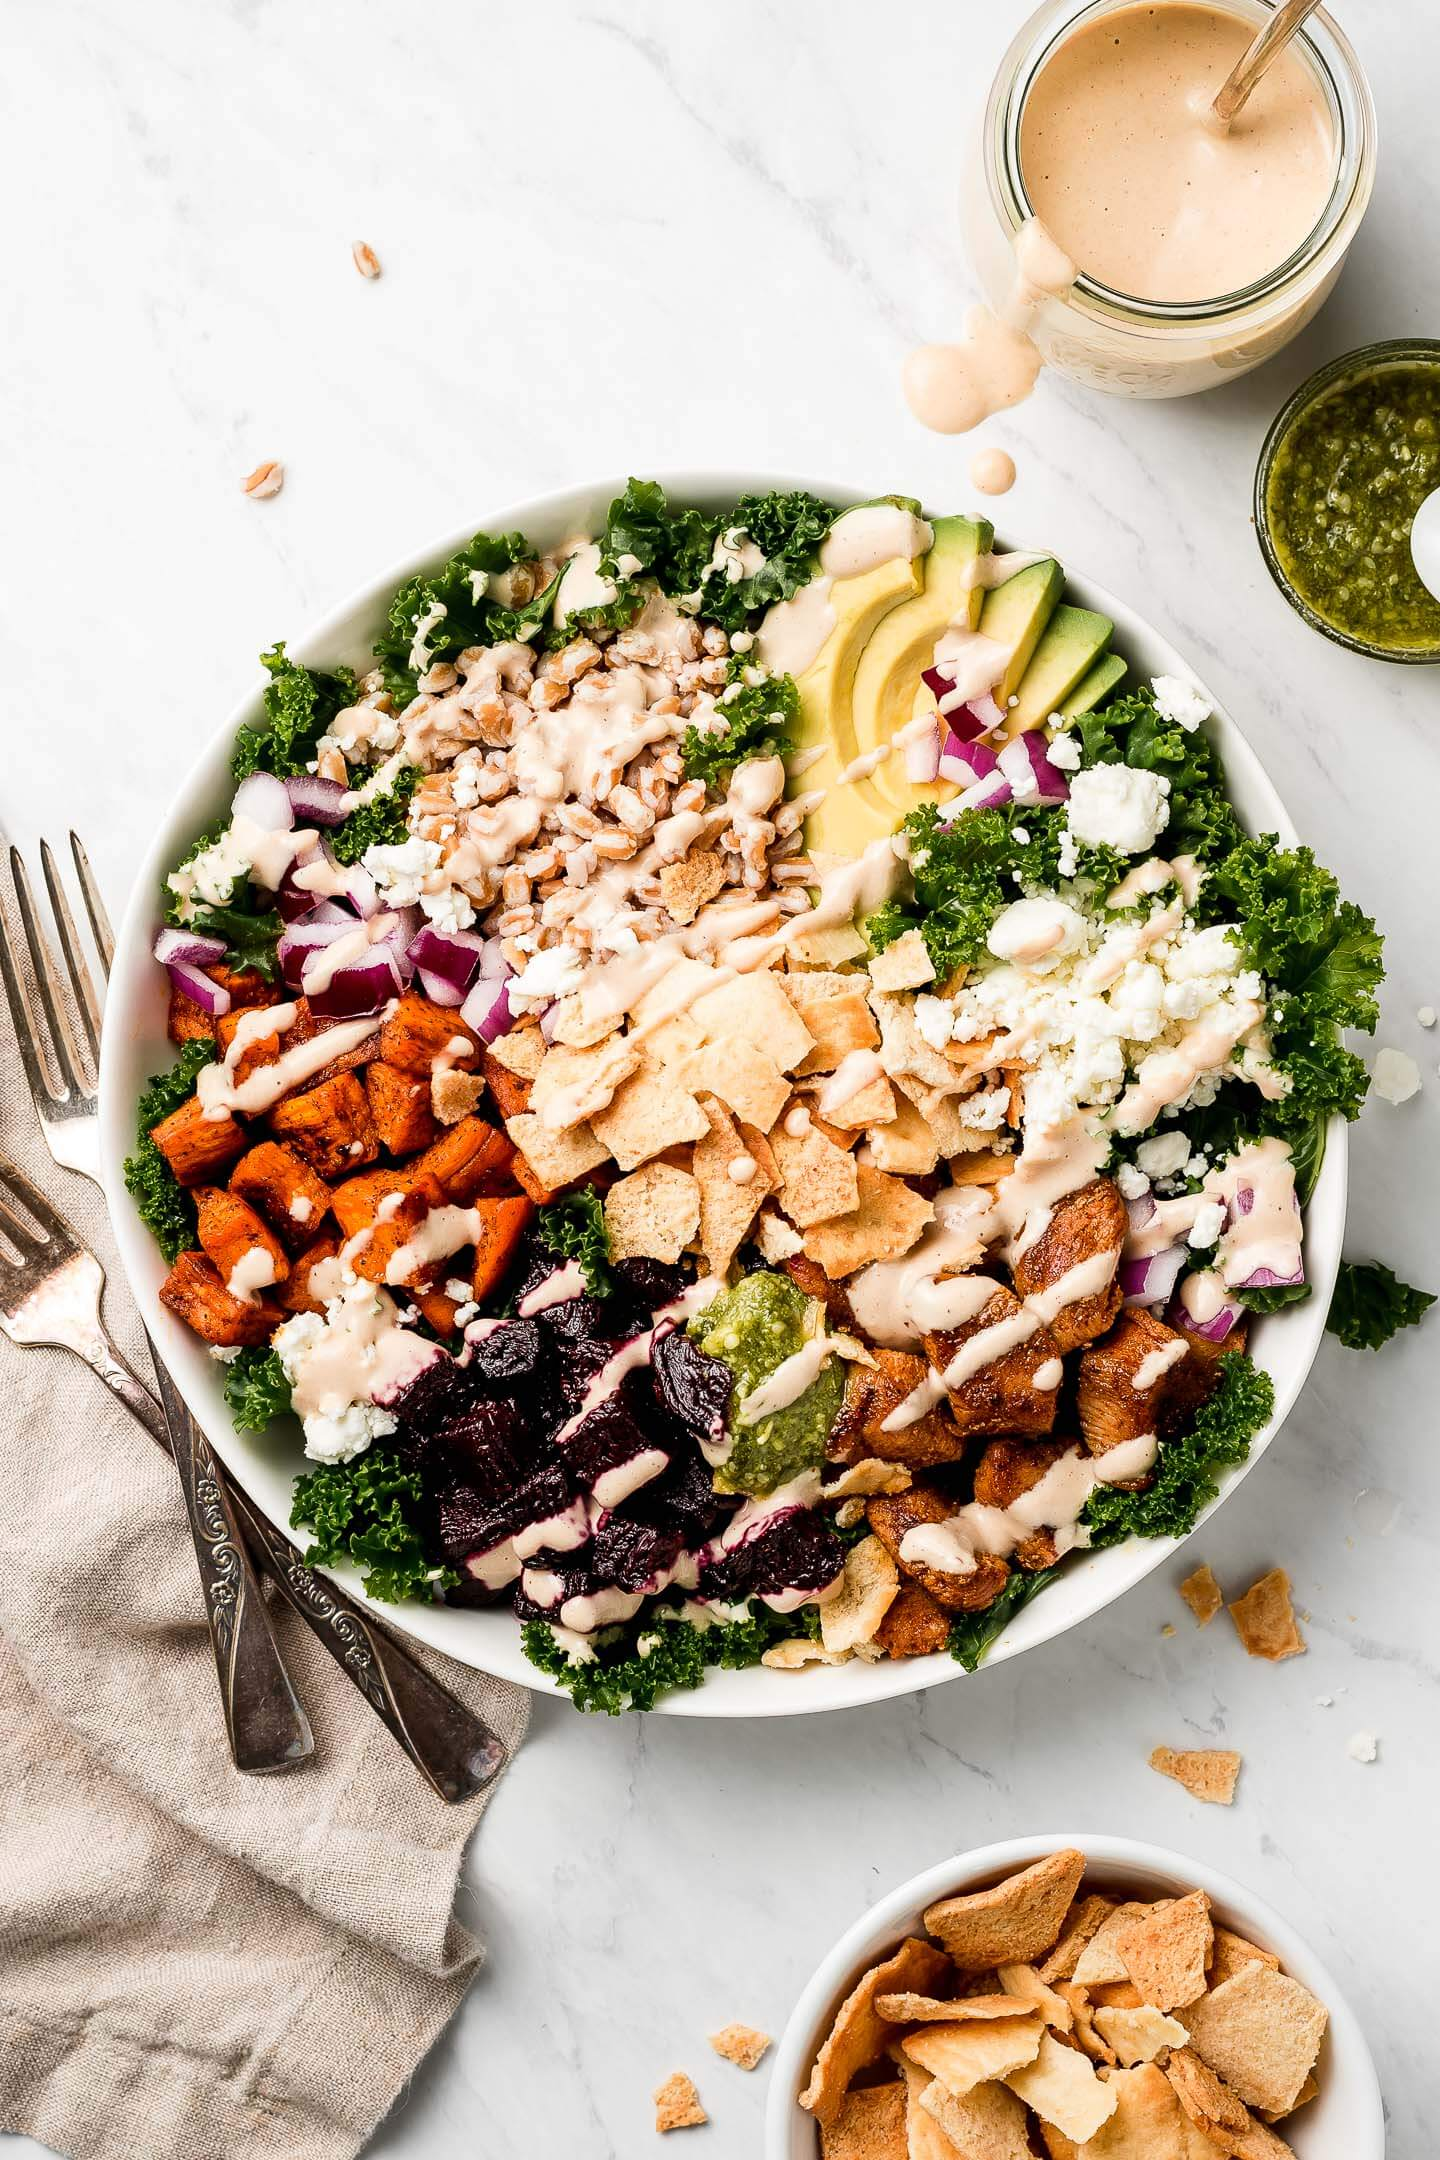 A large bowl of Kale Salad topped with roasted sweet potatoes, beets, farro, avocado, chicken, pita chips, red onions, and goat cheese; a jar of tahini dressing, small bowl of pesto, and bowl or pita chips to the side.